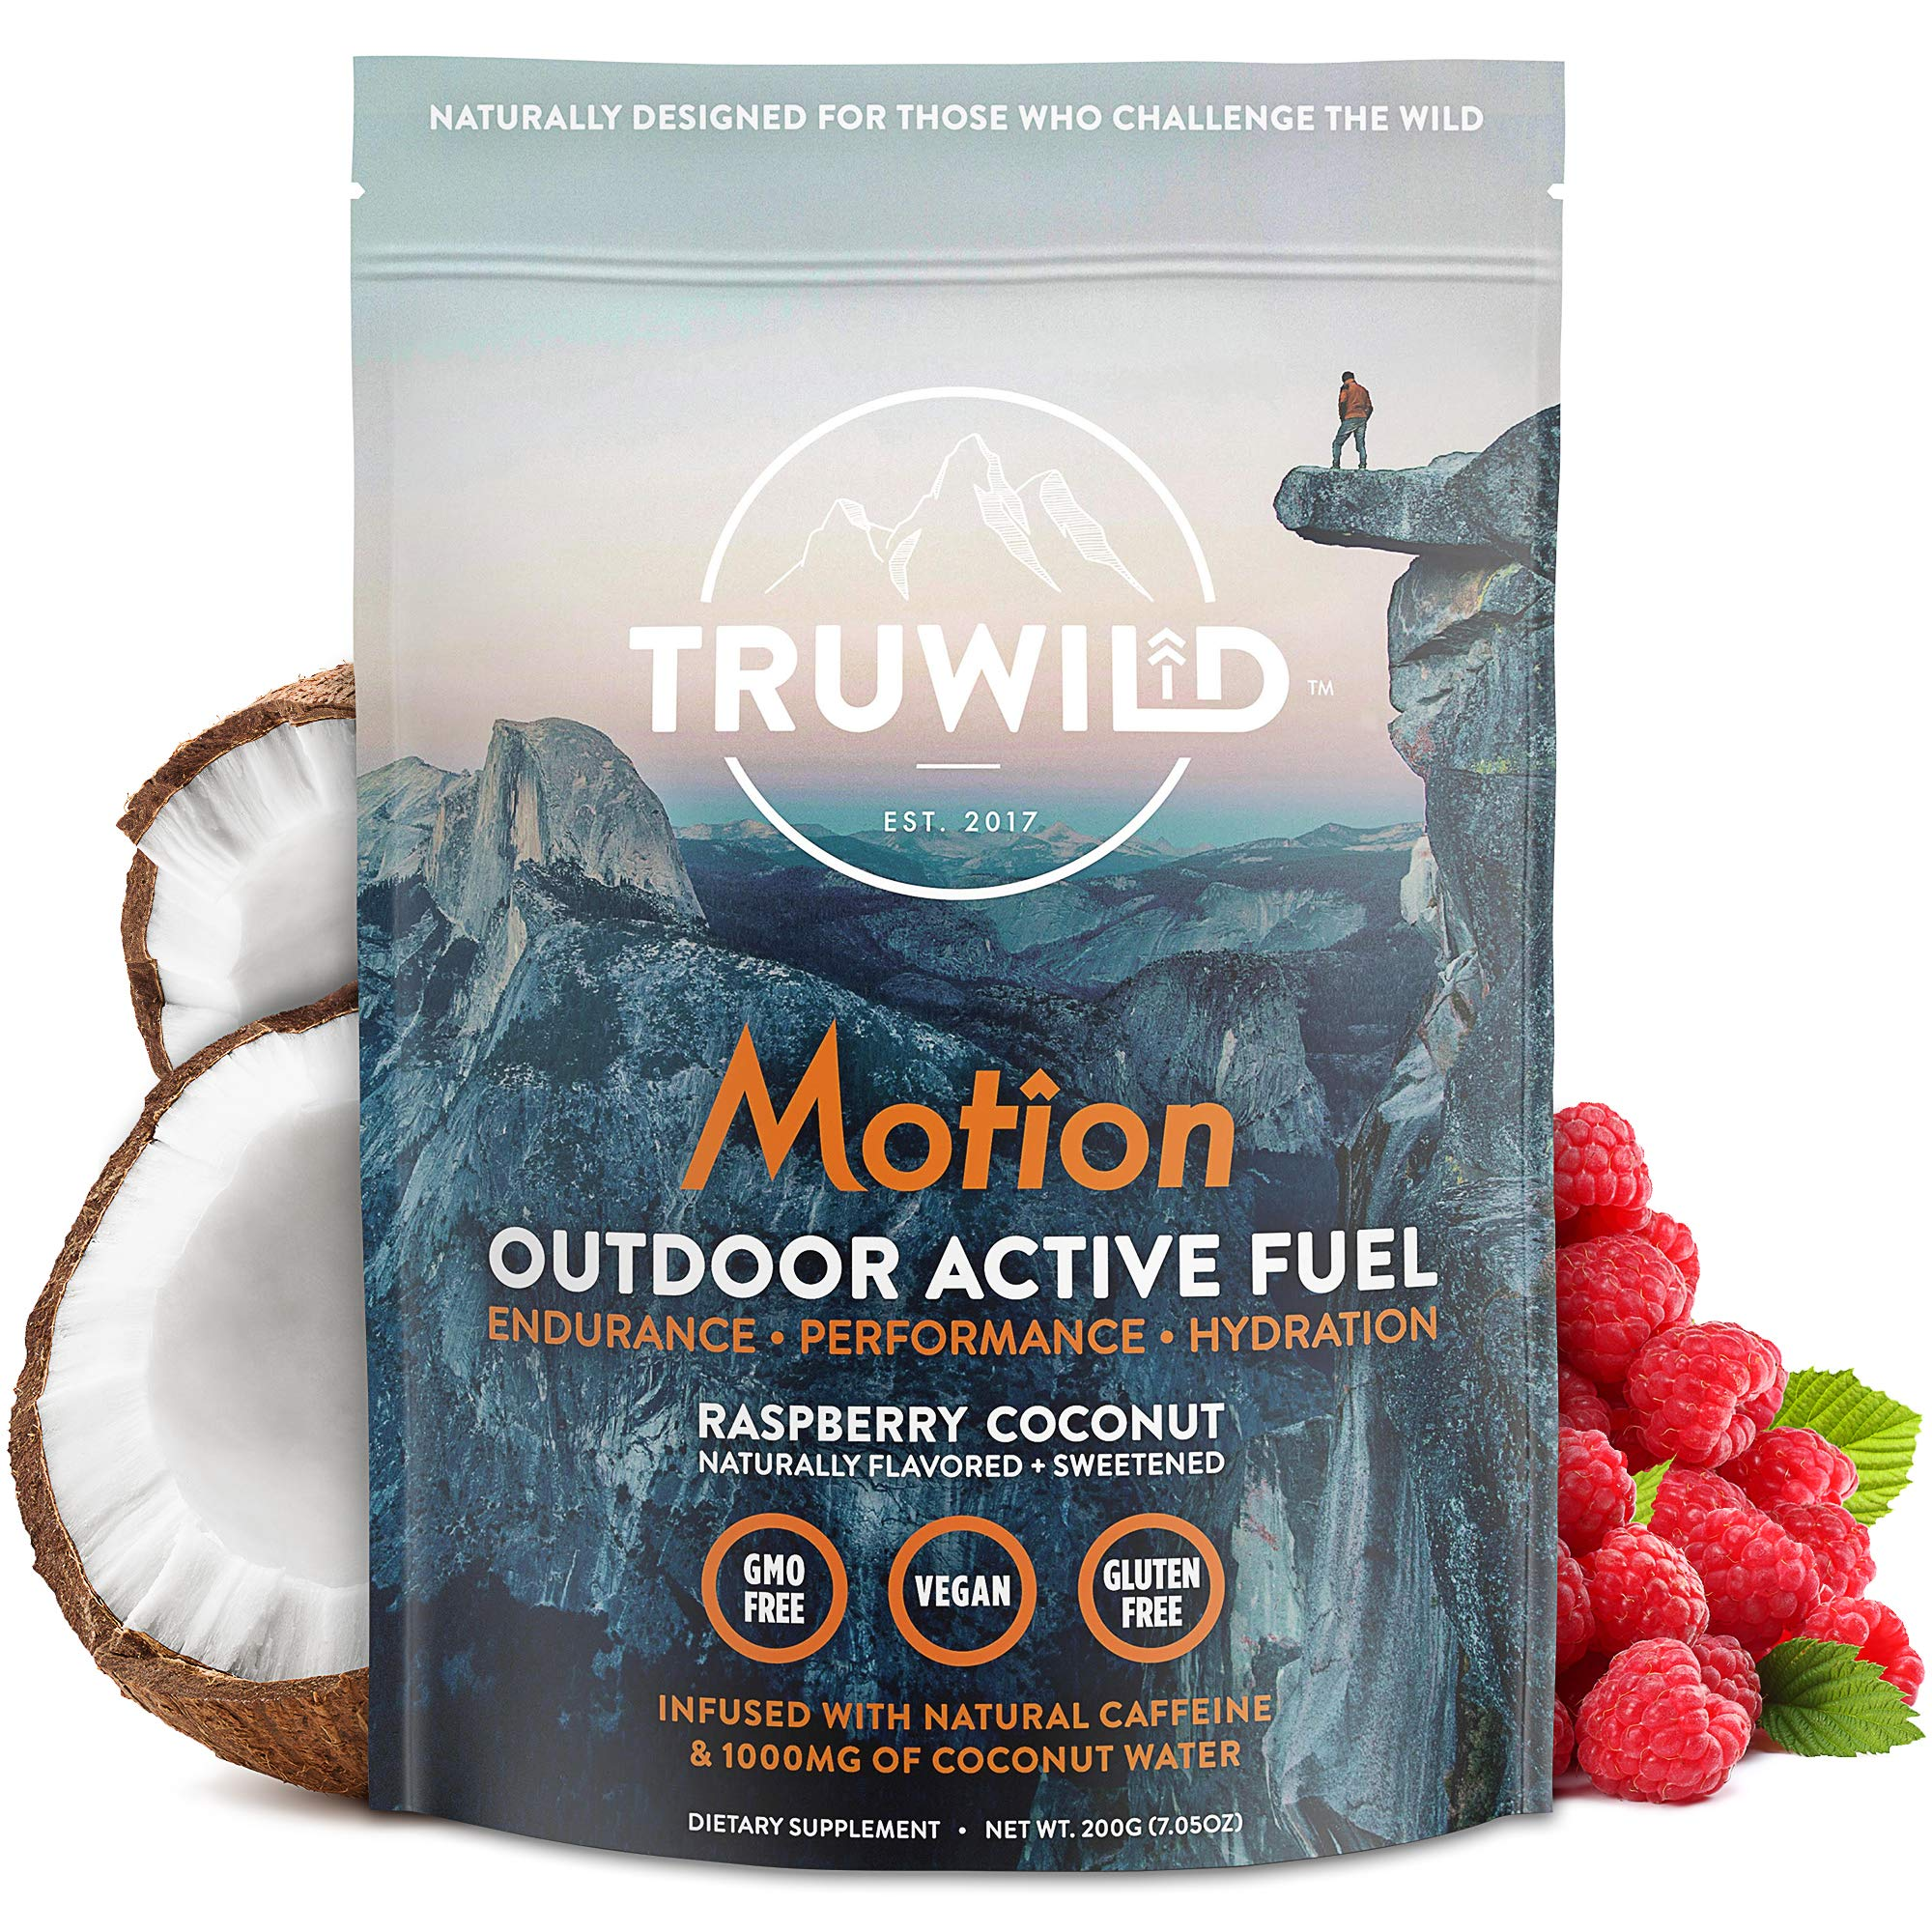 Motion - All Natural Pre Workout Powder Drink Mix for Men and Women - Plant Based Vegan Keto Preworkout Energy Drink Supplement - Amino Acids - Creatine Free - No Crash or Jitters by TruWild